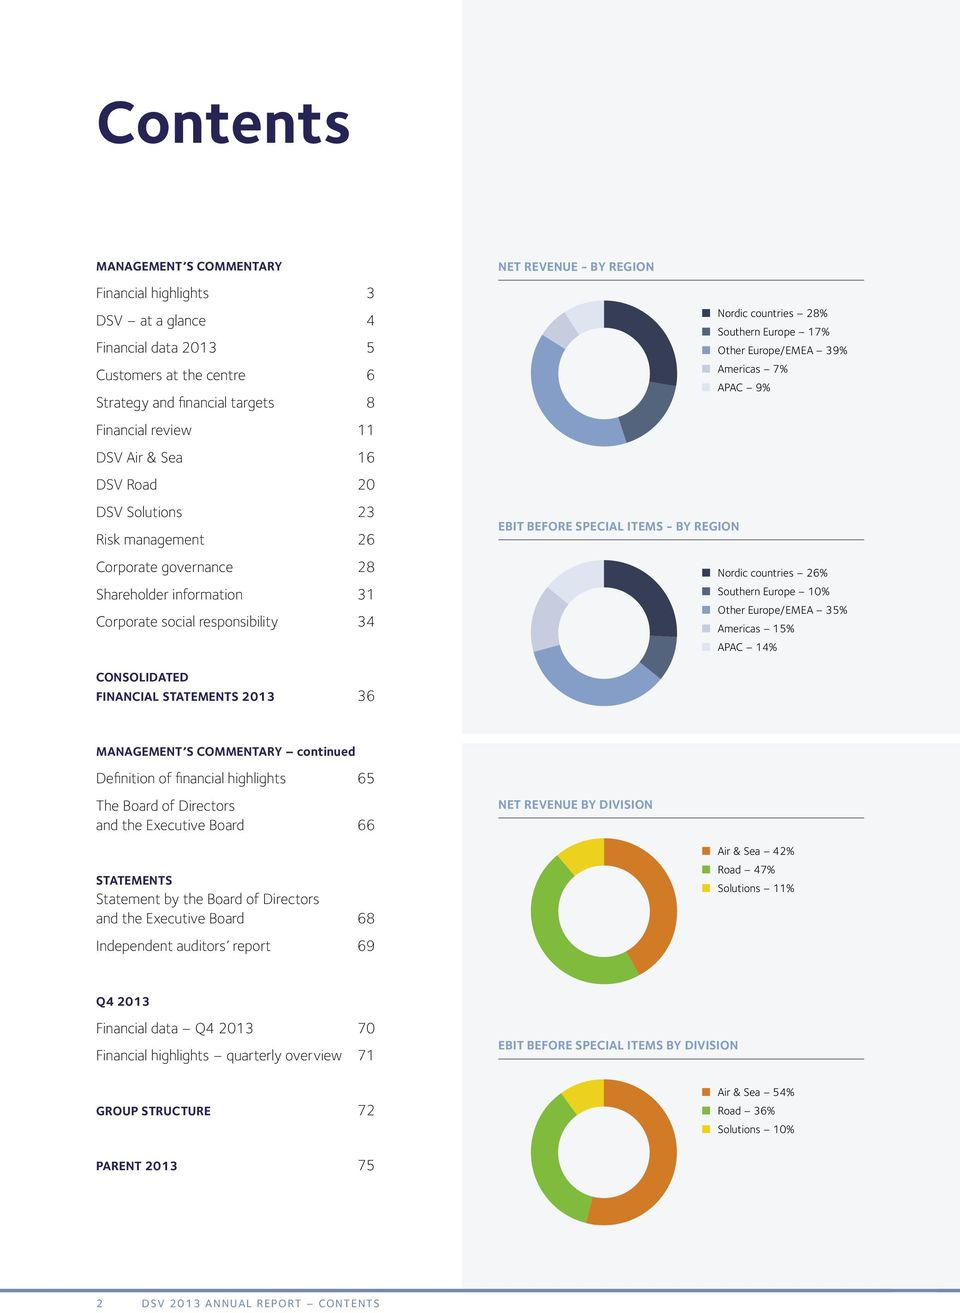 Other Europe/EMEA 39% Americas 7% APAC 9% EBIT before special items - BY REGION Nordic countries 26% Southern Europe 10% Other Europe/EMEA 35% Americas 15% APAC 14% CONSOLIDATED FINANCIAL STATEMENTS